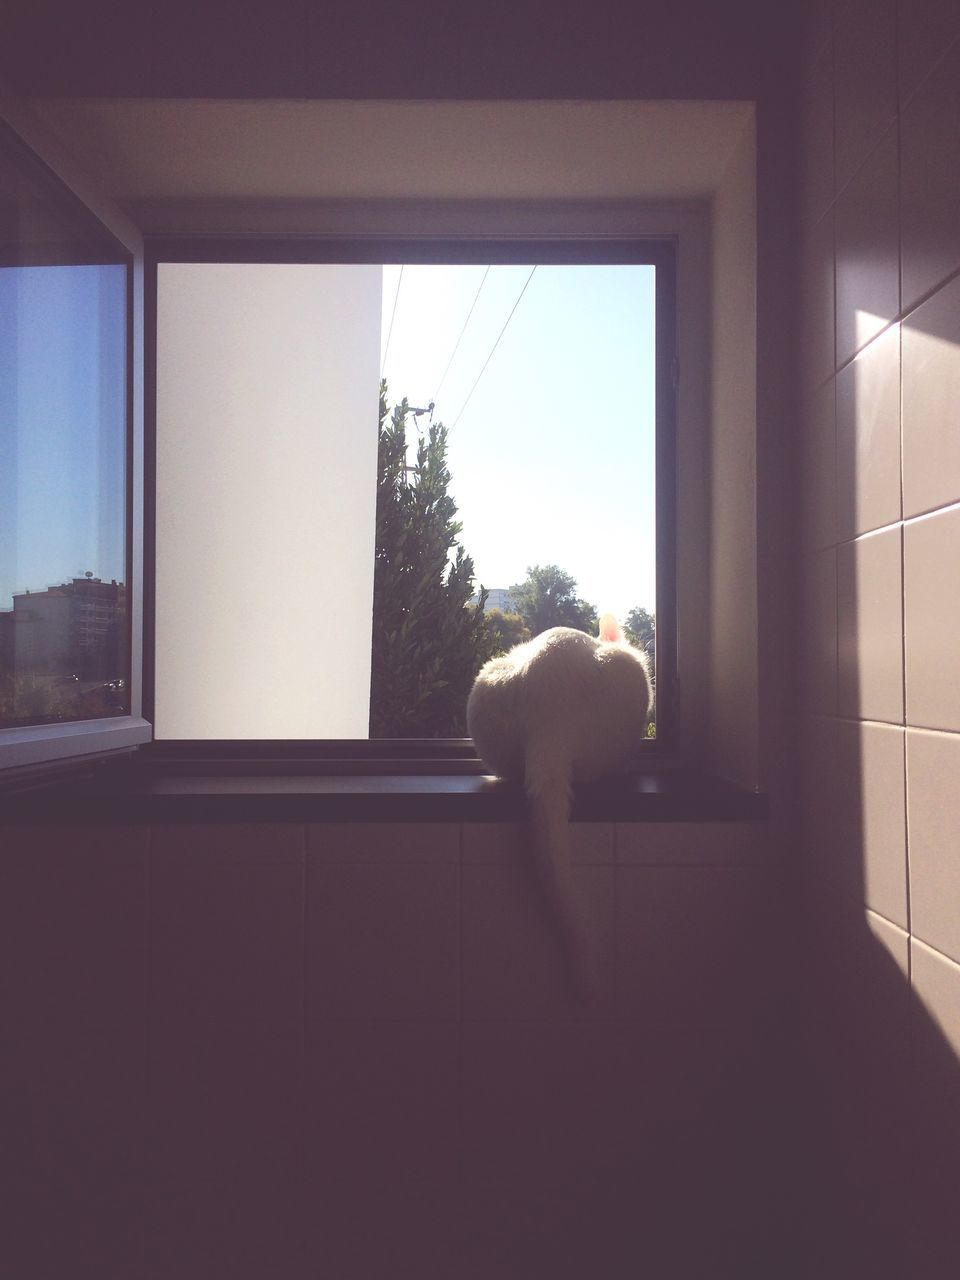 window, indoors, one animal, looking through window, day, full length, clear sky, standing, animal themes, real people, one person, mammal, nature, sky, people